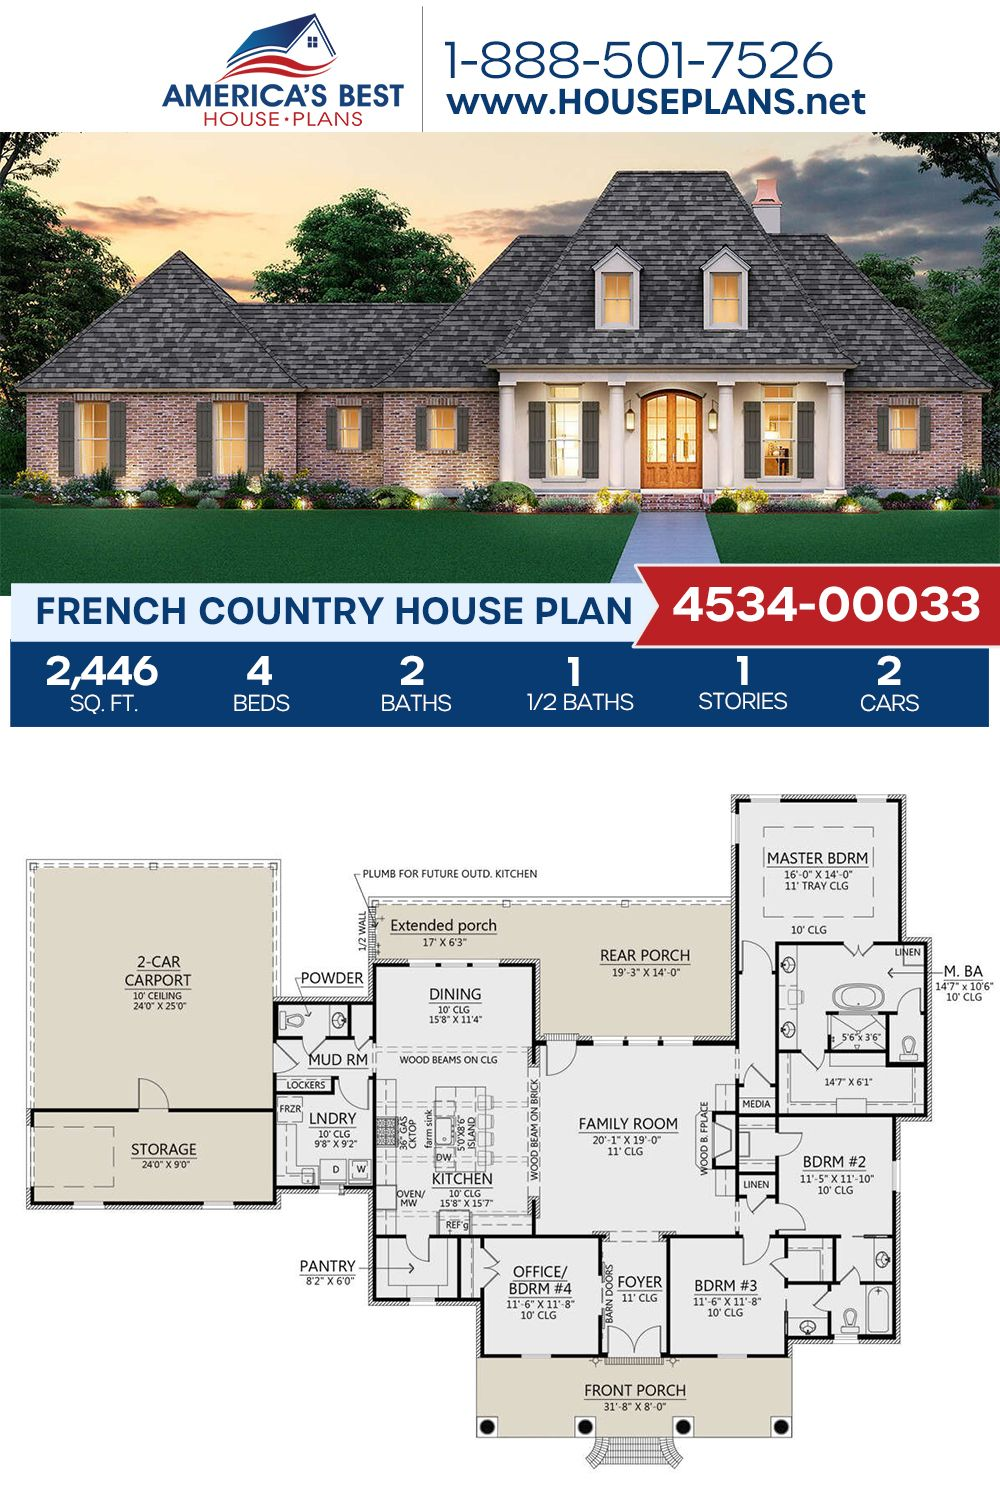 House Plan 4534 00033 French Country Plan 2 446 Square Feet 4 Bedrooms 2 5 Bathrooms In 2020 Affordable House Plans French Country House French Country House Plans